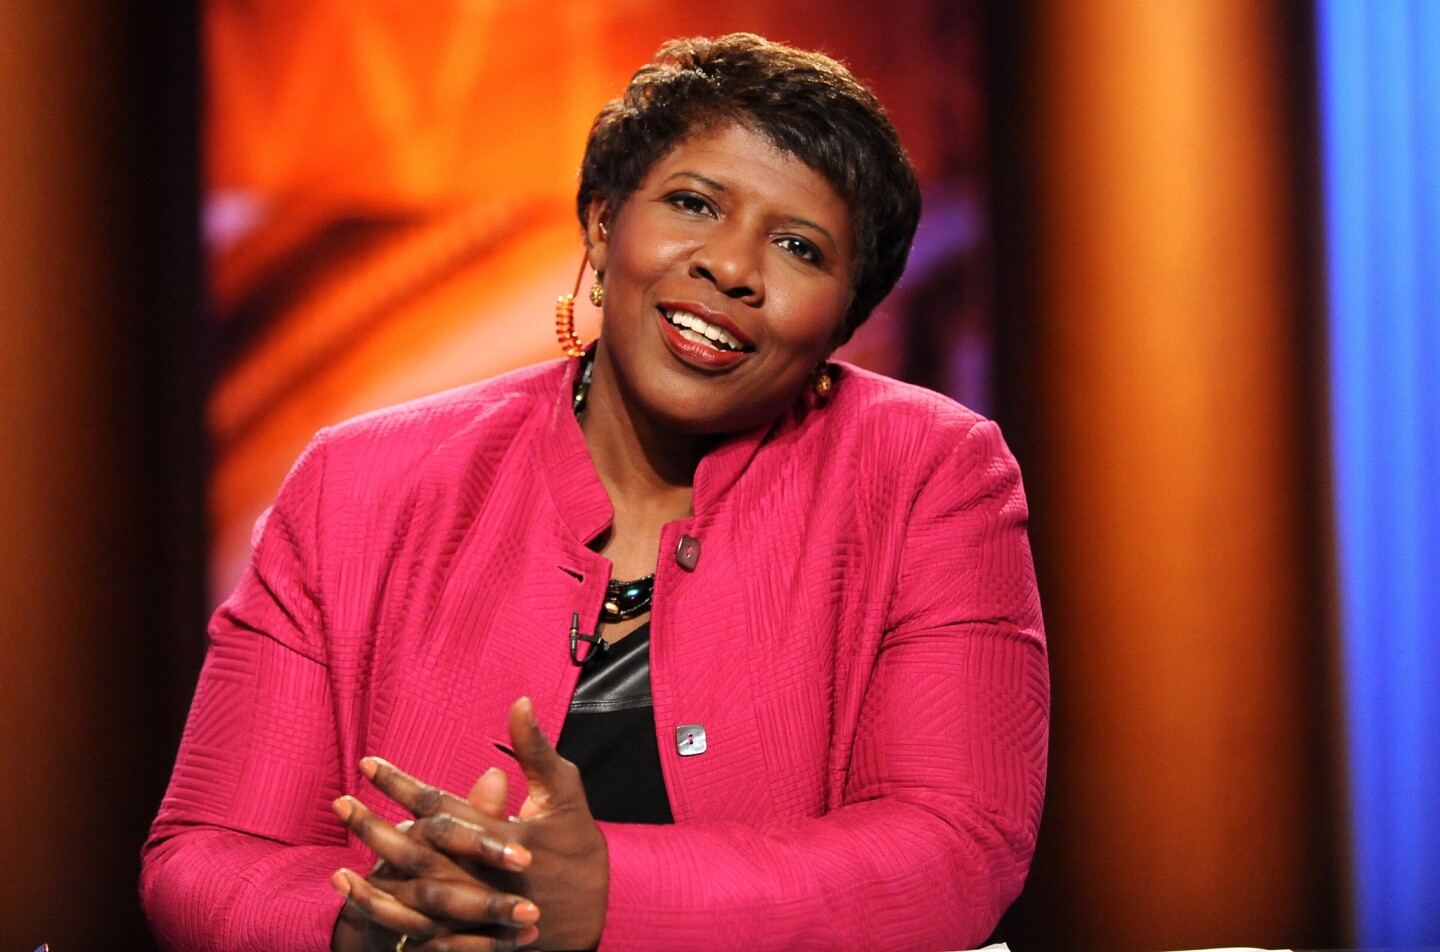 Shown is Gwen Ifill (former Evening Sun employee) in the WETA studios. Photo is to accompany her essay in the Sun Magazine celebrating the 175th anniversary of the newspaper.